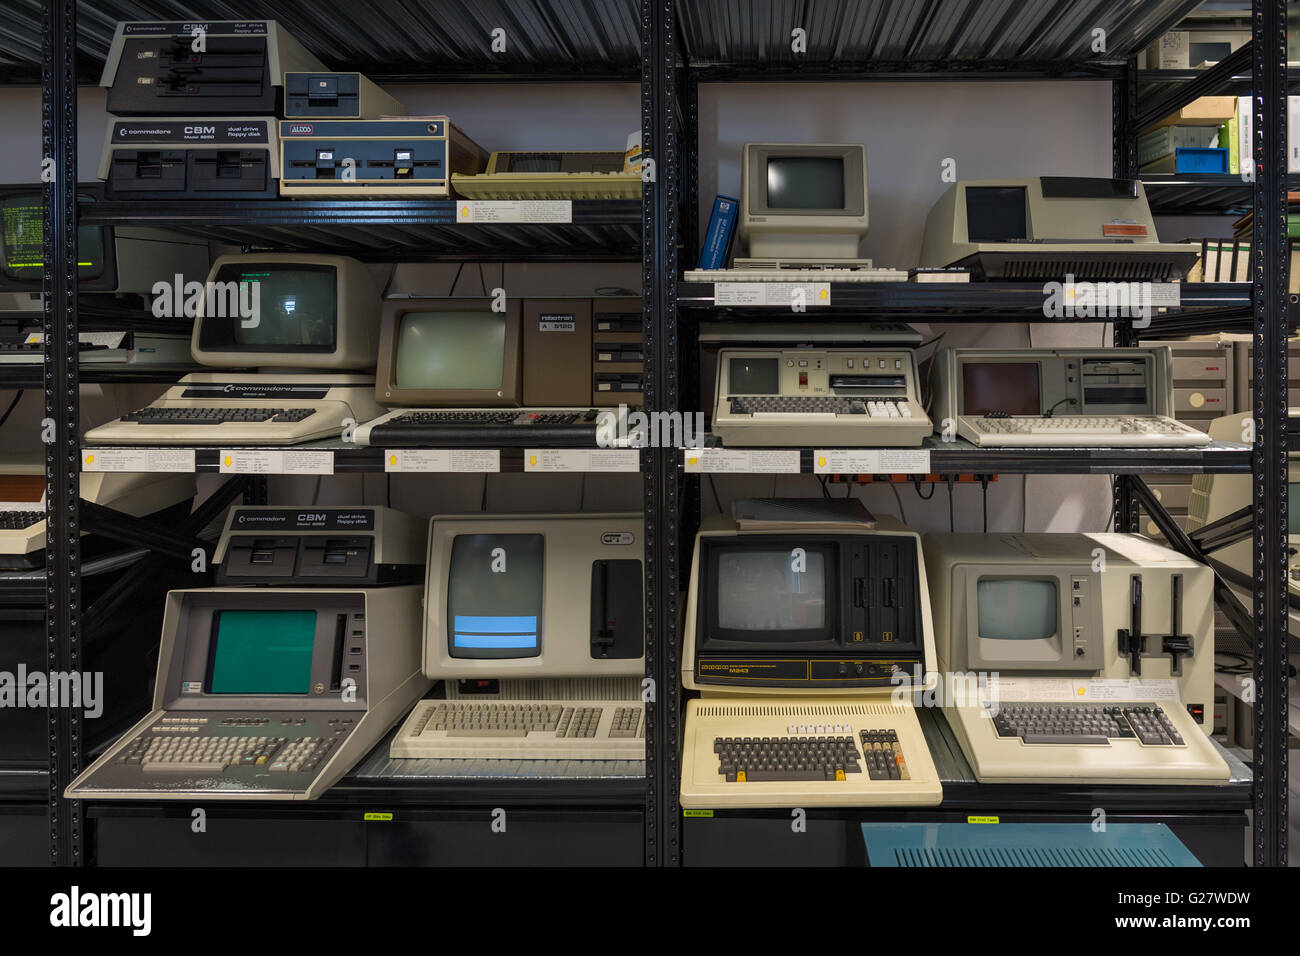 Old computers in the Computer Museum, University of Stuttgart, Stuttgart-Vaihingen, Baden-Württemberg, Germany - Stock Image